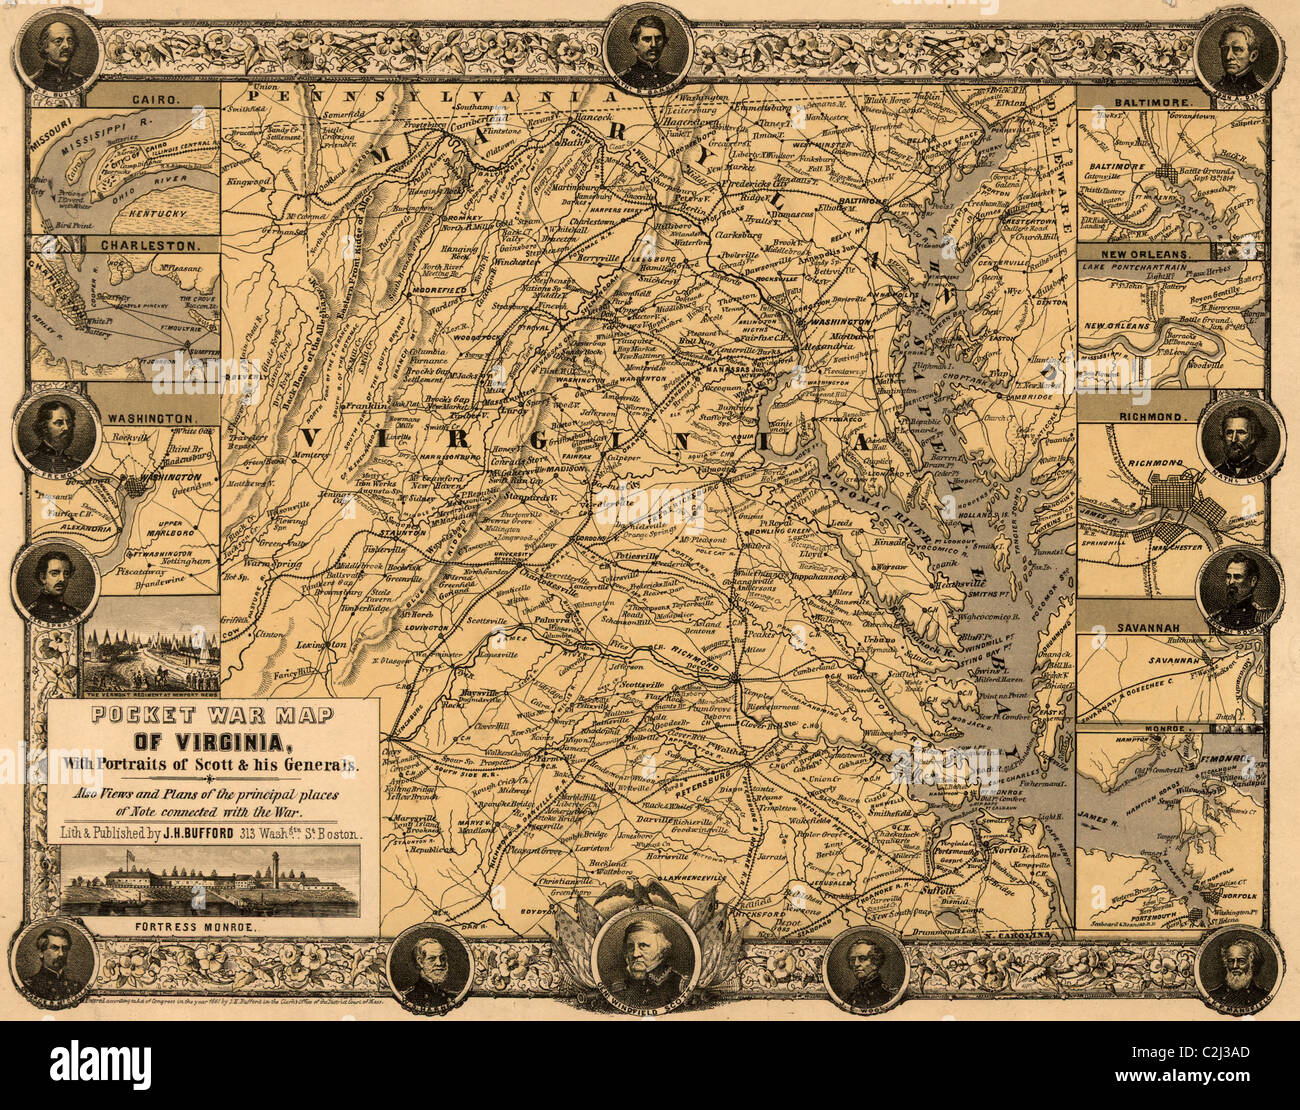 Pocket war map of Virginia, with portraits of Scott & his generals. - Stock Image